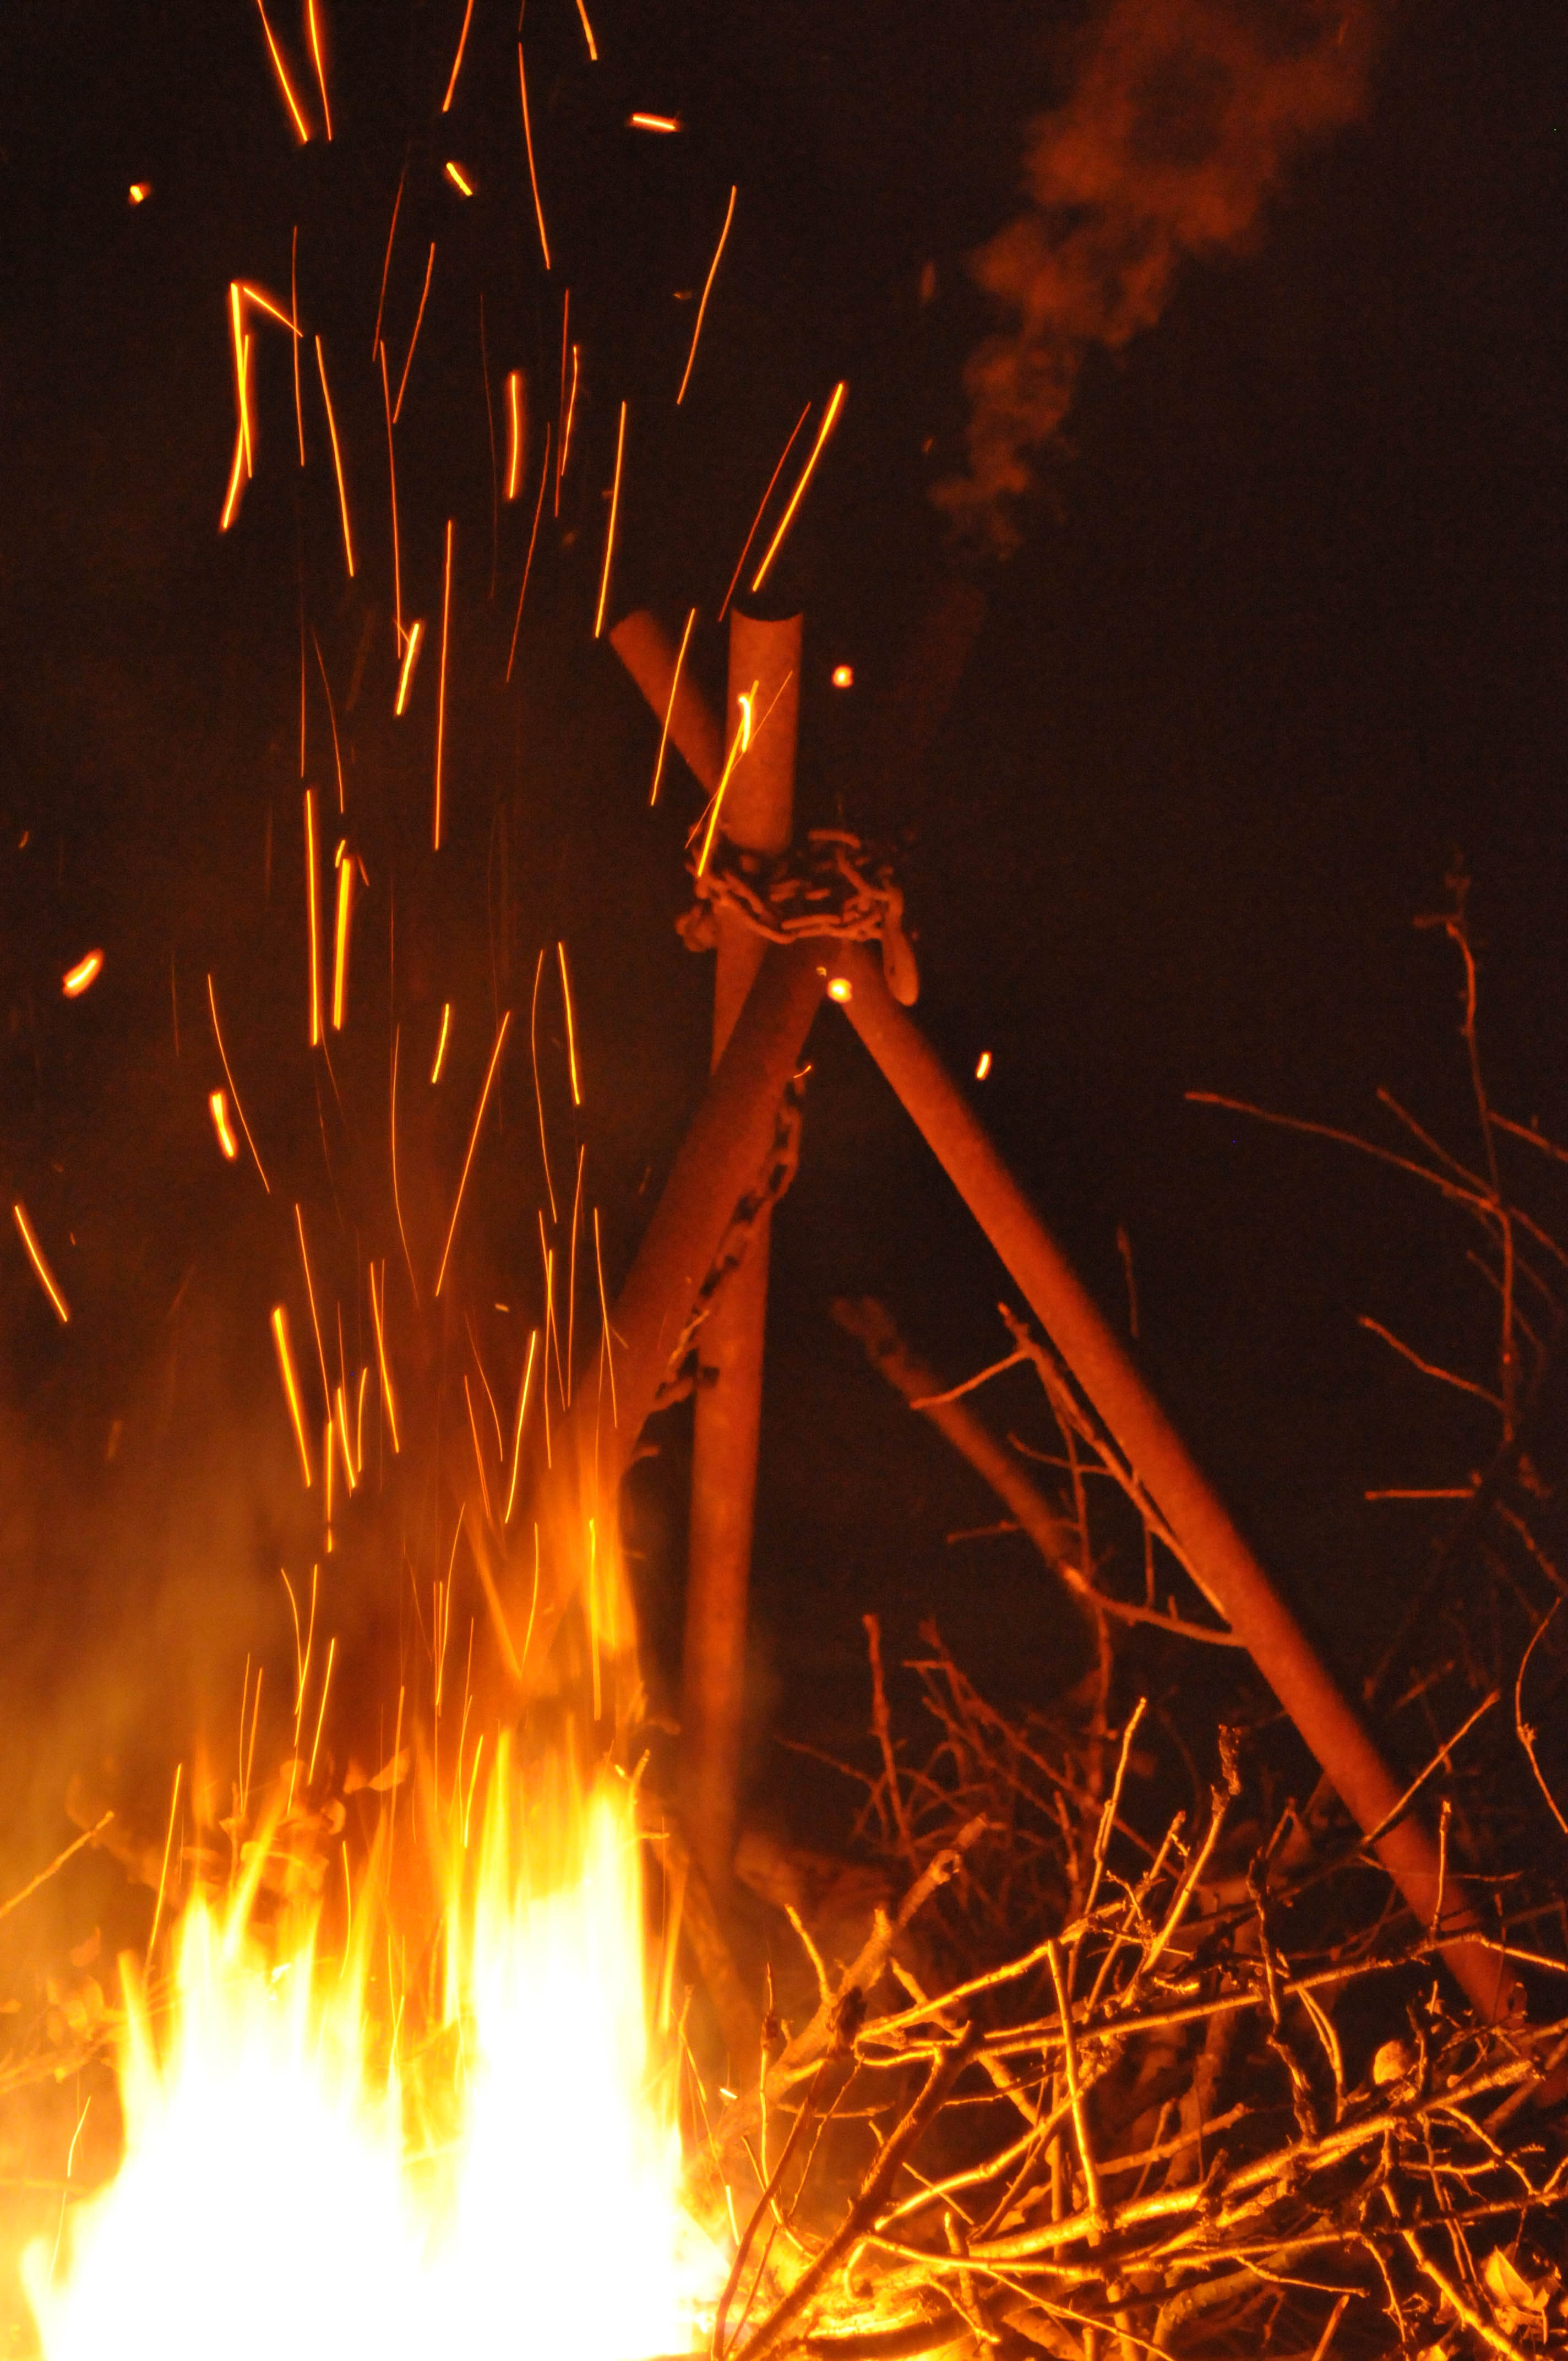 https://i0.wp.com/upload.wikimedia.org/wikipedia/commons/a/ac/Christmas_bonfire.jpg